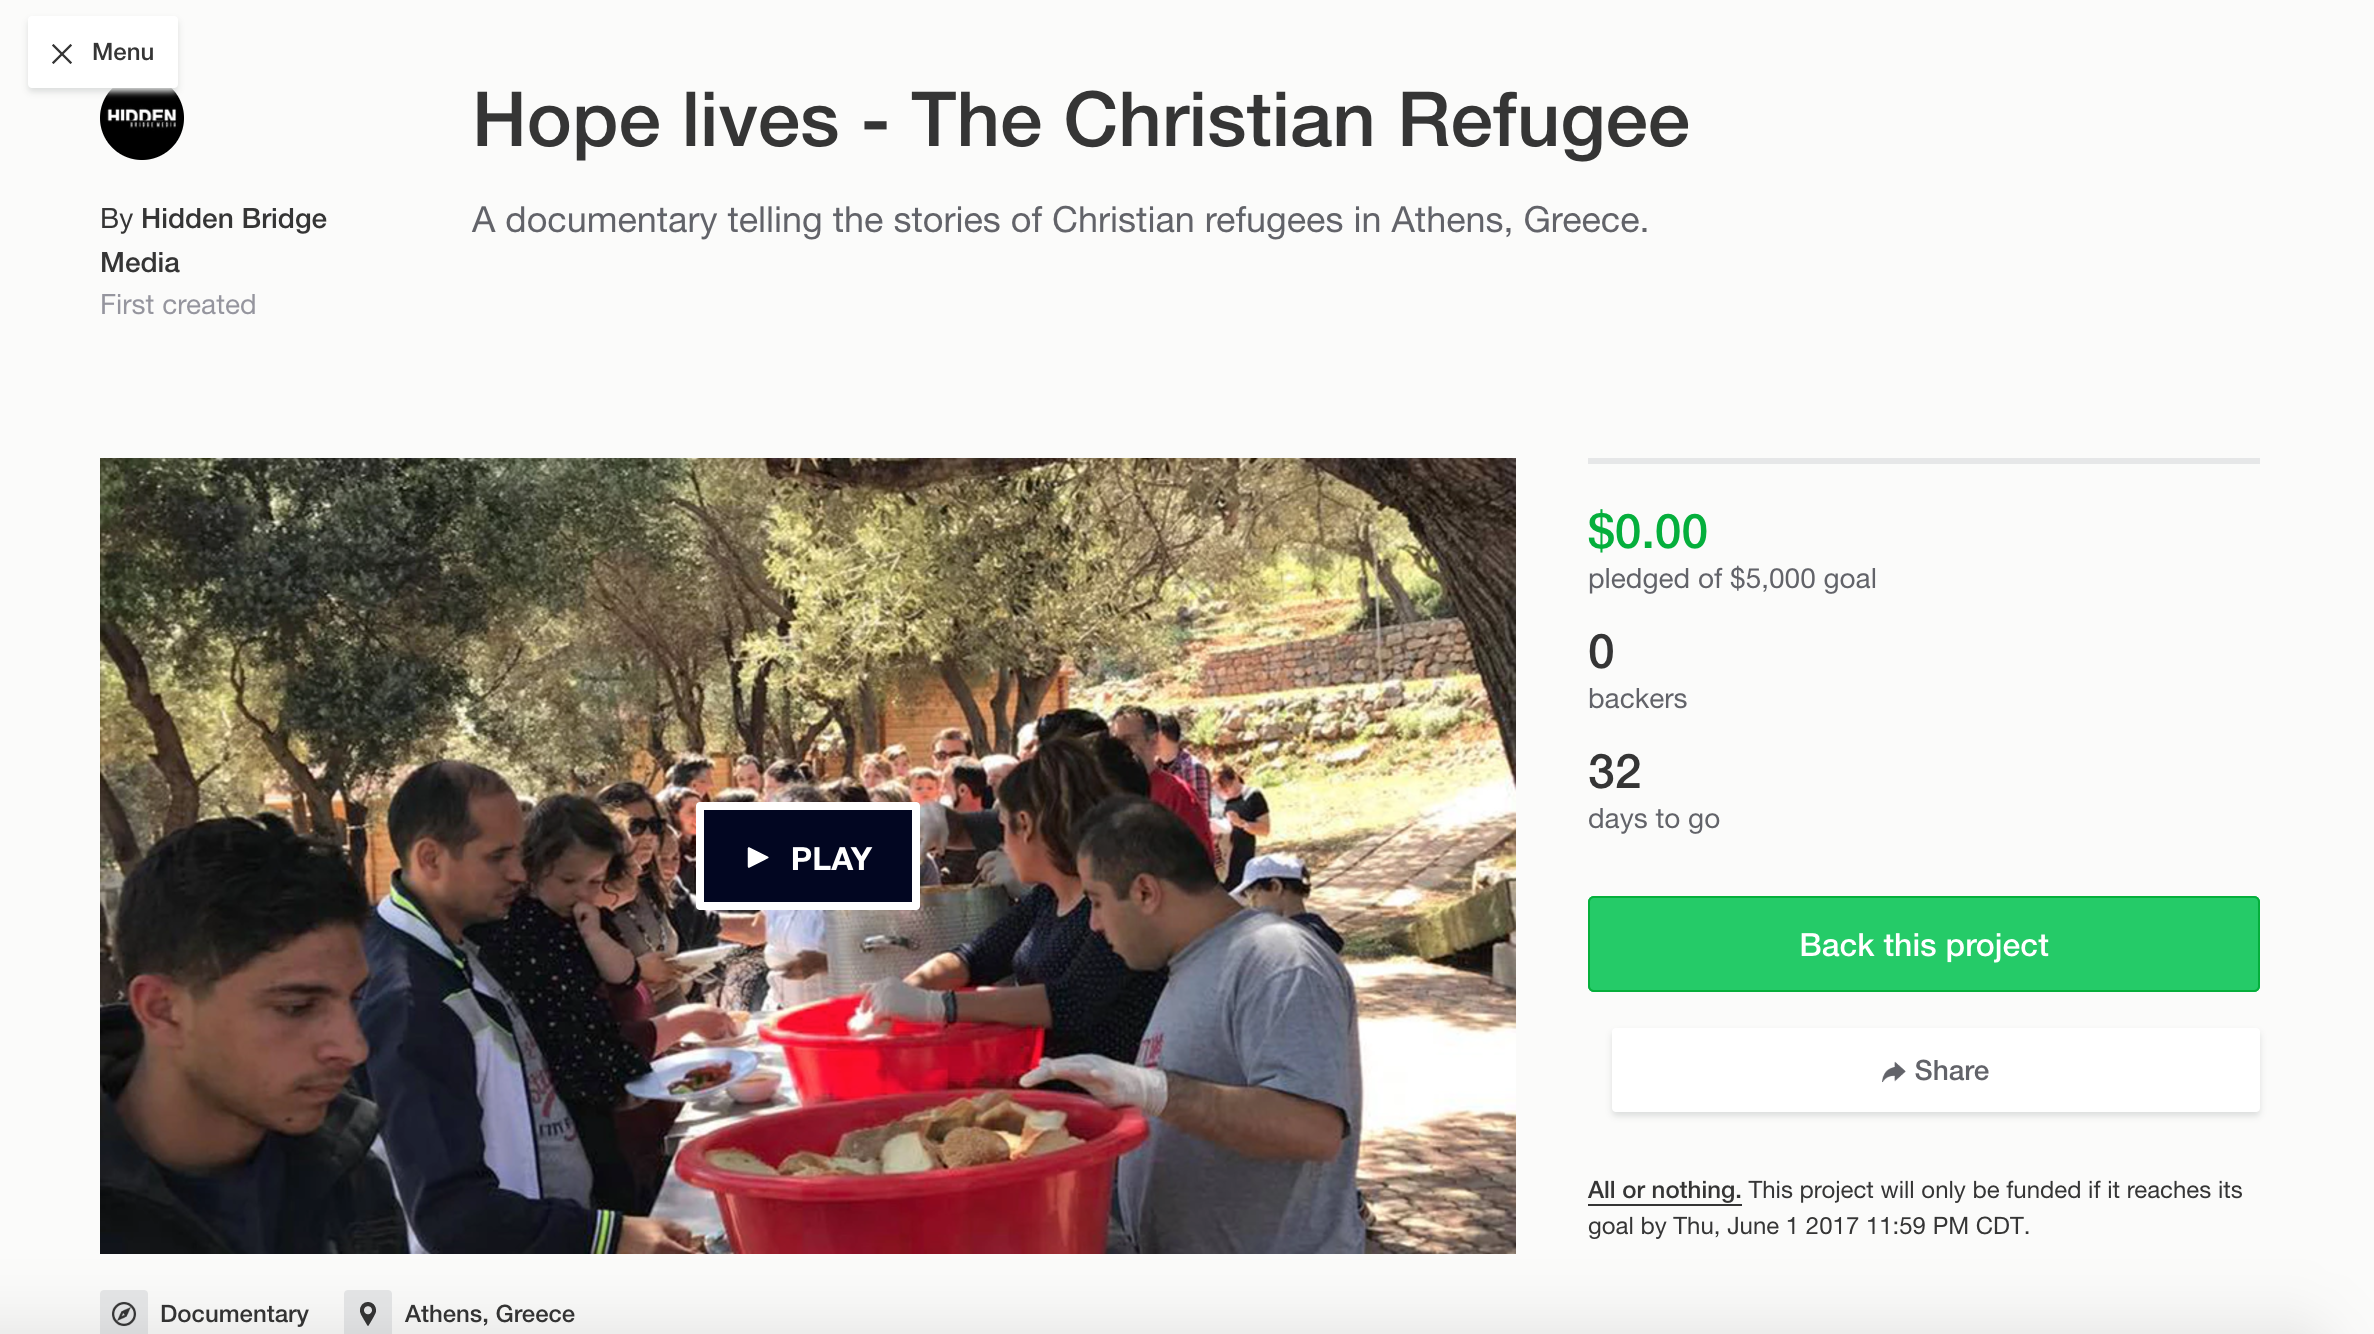 The Christian Refugee Documentary